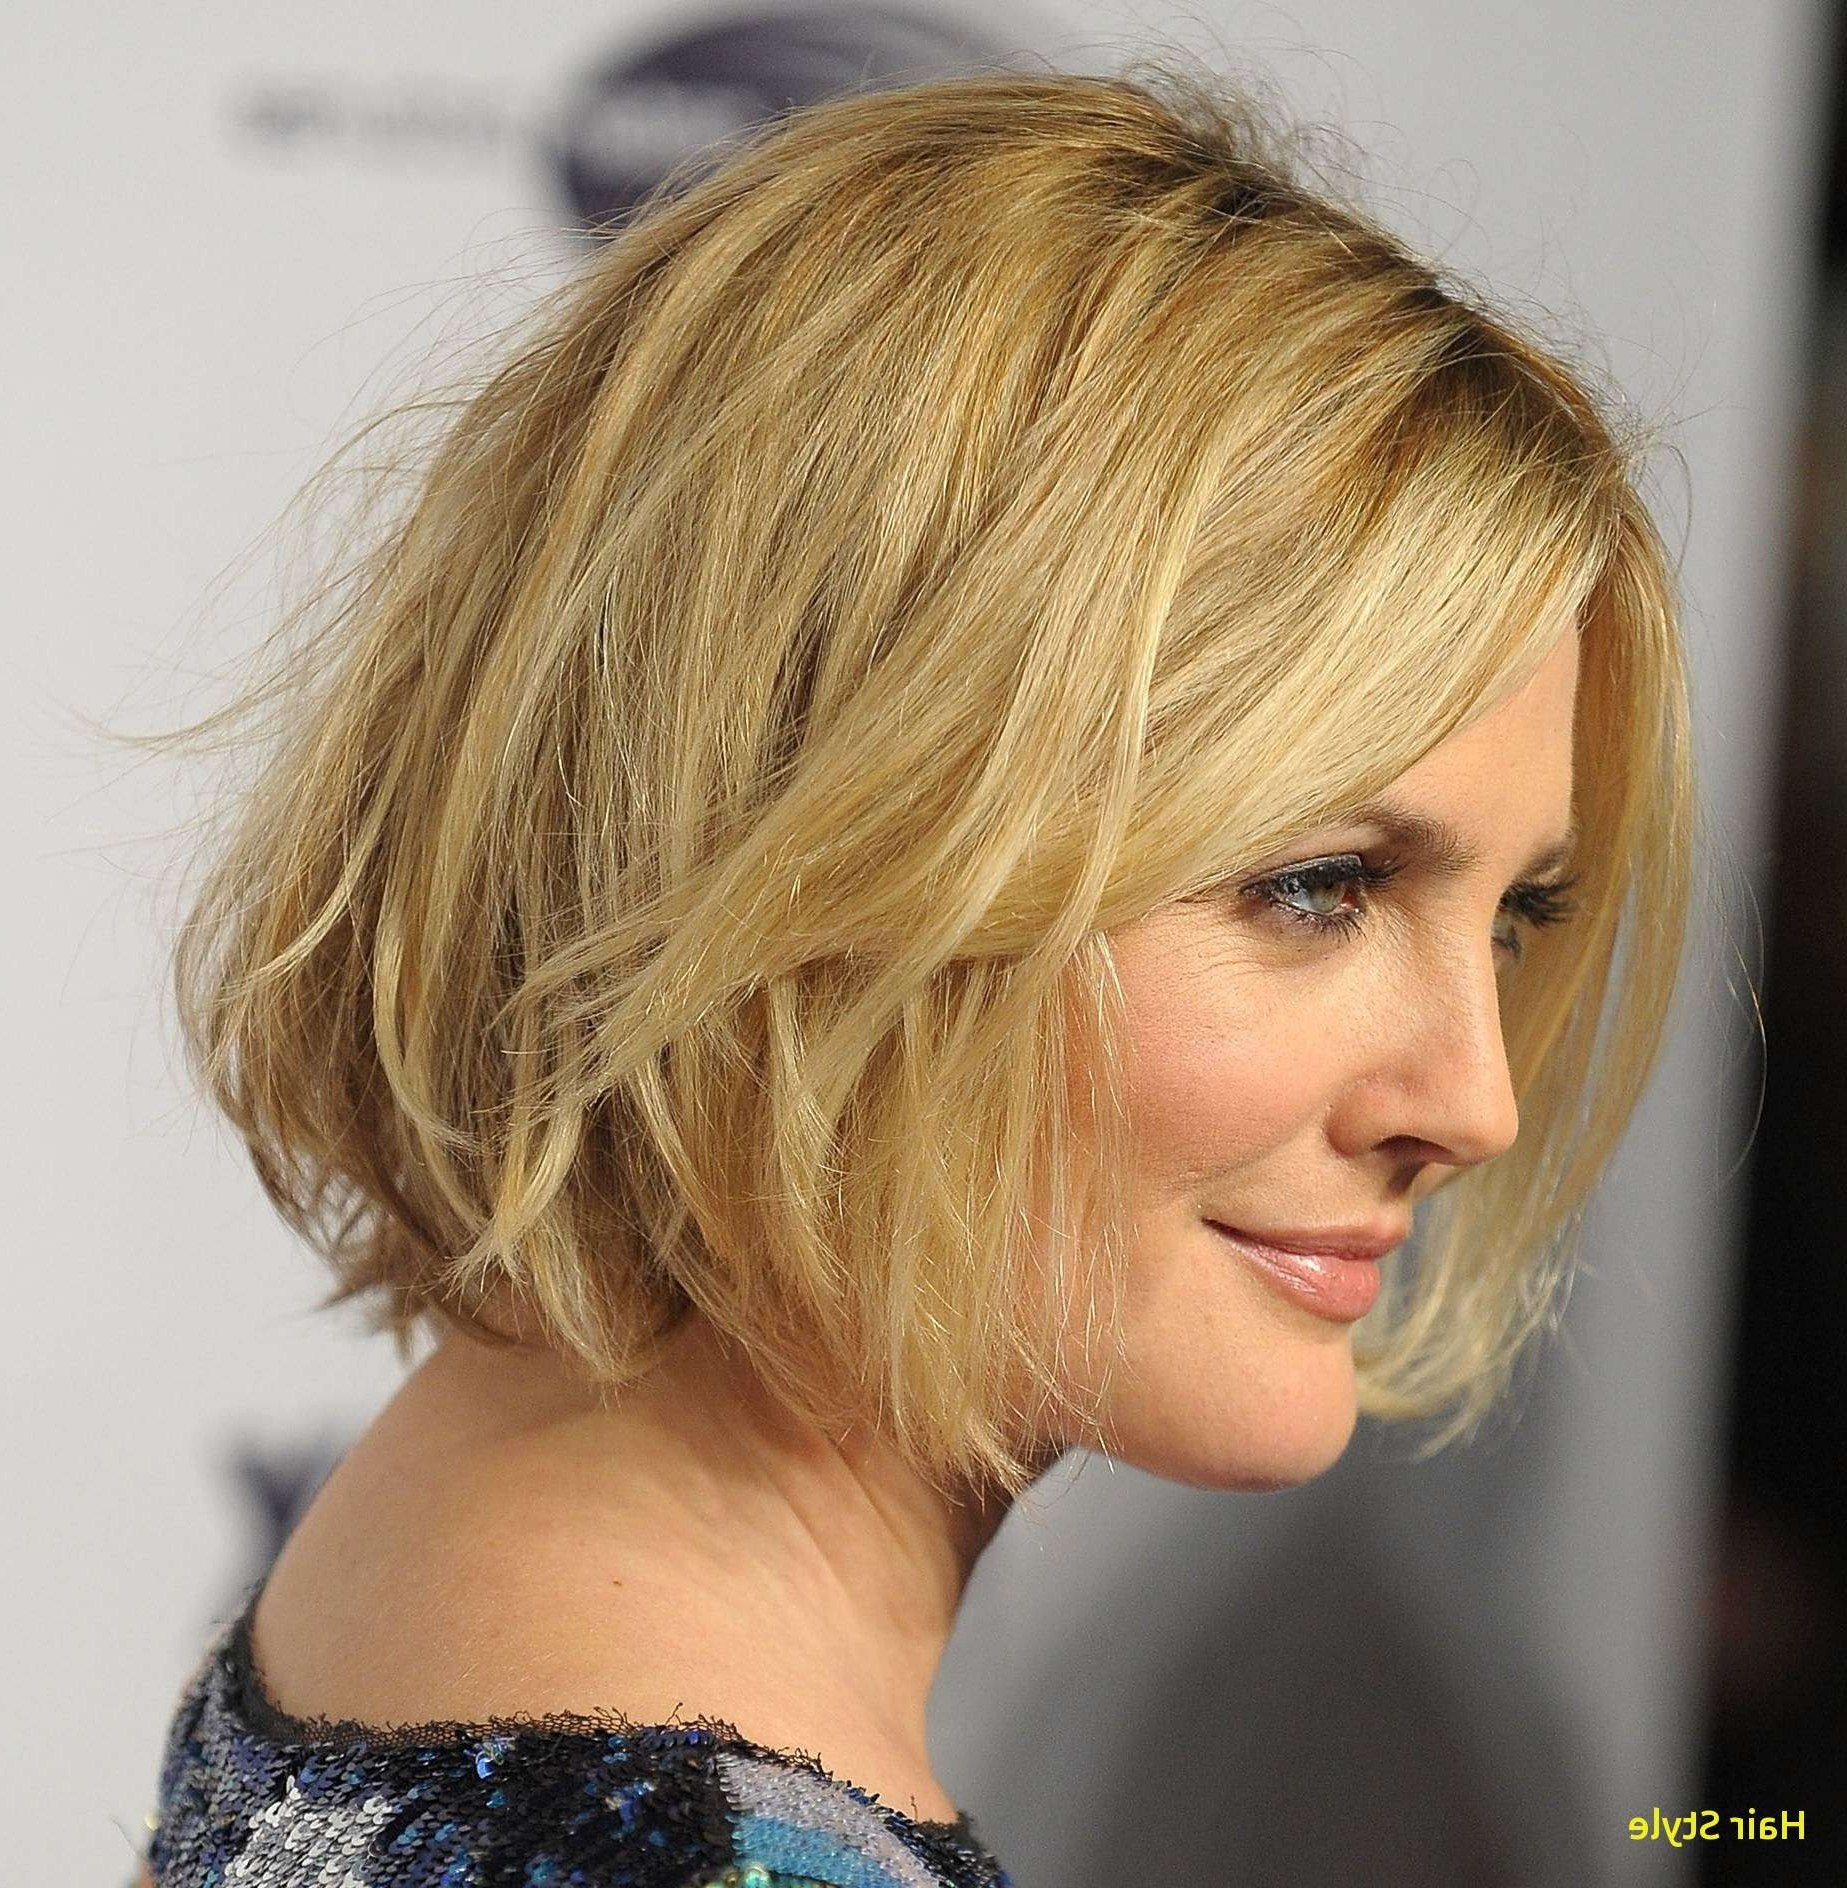 Short To Mid Length Hairstyles Inspirational Unique Hairstyles For With Regard To Kristin Cavallari Short Hairstyles (View 24 of 25)